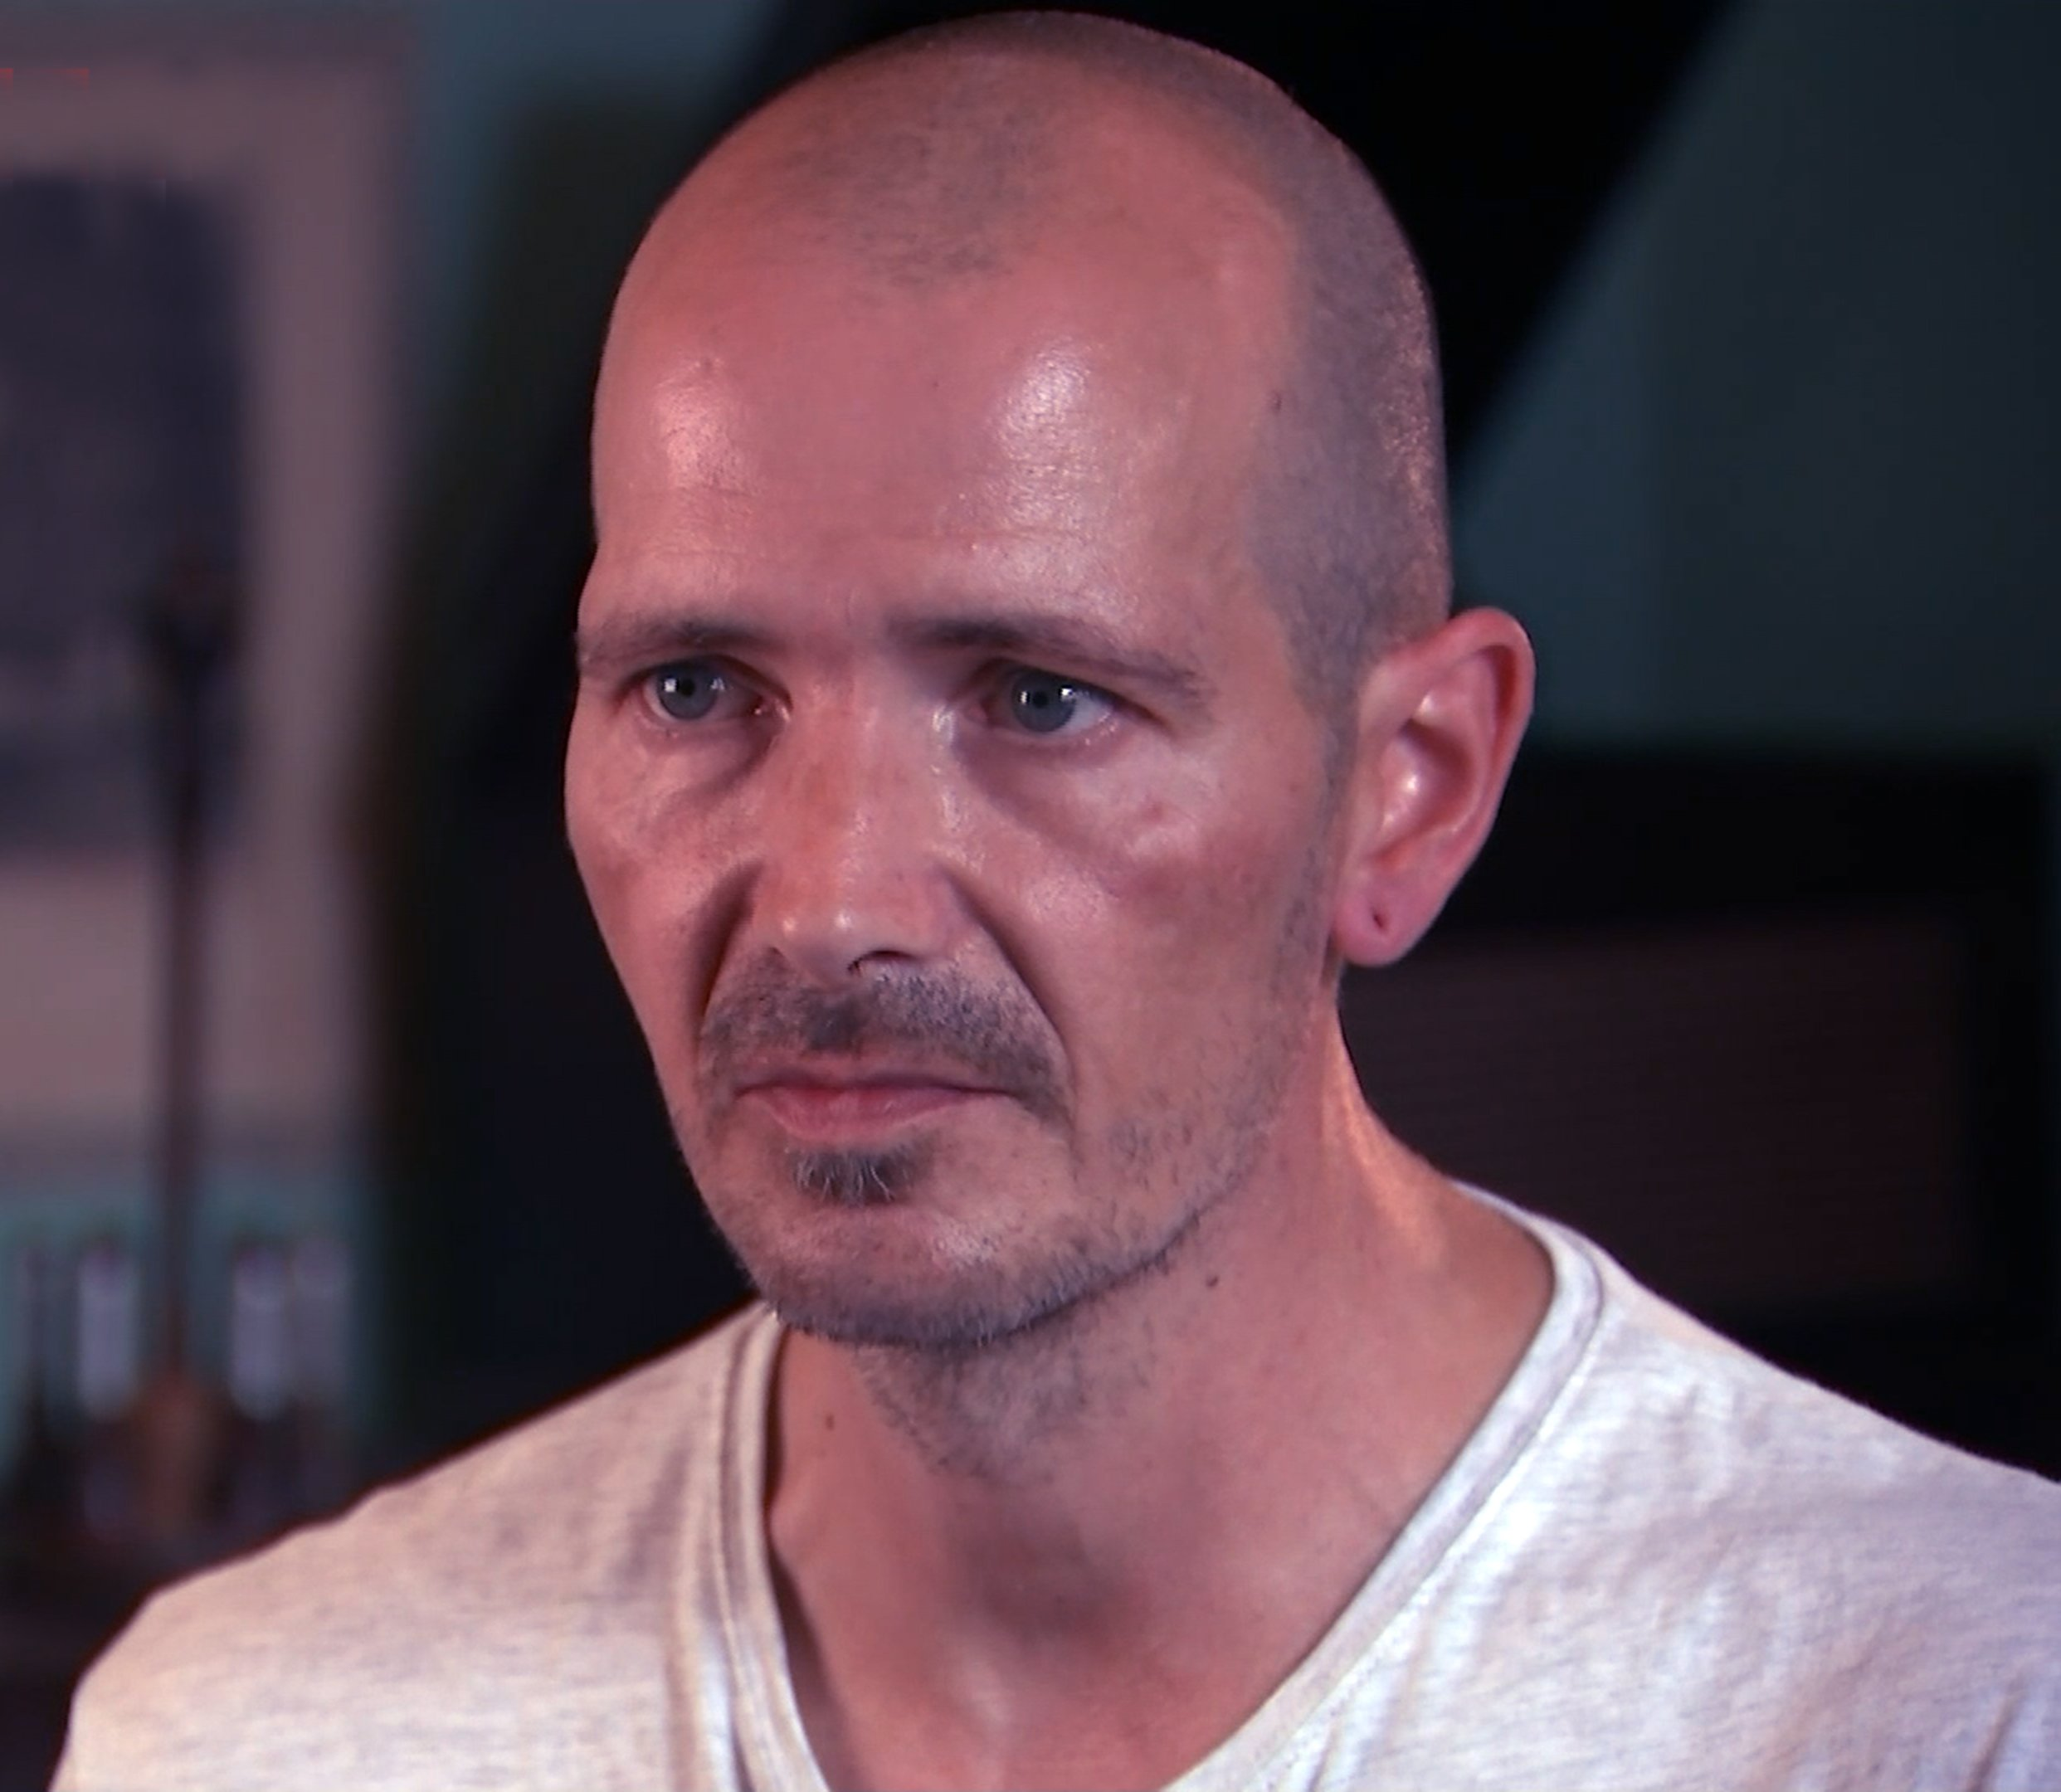 ITV News Exclusive: Charlie Rowley recalls perfume bottle filled with 'oily' Novichok, which took just 15 minutes to poison Dawn Sturgess 'It was a box say 3x3inch box at half an inch thick maybe. Cardboard box with a plastic moulding which contained a glass bottle and plastic dispenser which you had to attach the two' 'Within 15 minutes Dawn said she had a headache. She asked me if I had any headache tablets' In that time she said she felt peculiar and needed to lie down in the bath' I went into the bathroom and found her in the bath, fully clothed, in a very ill state'